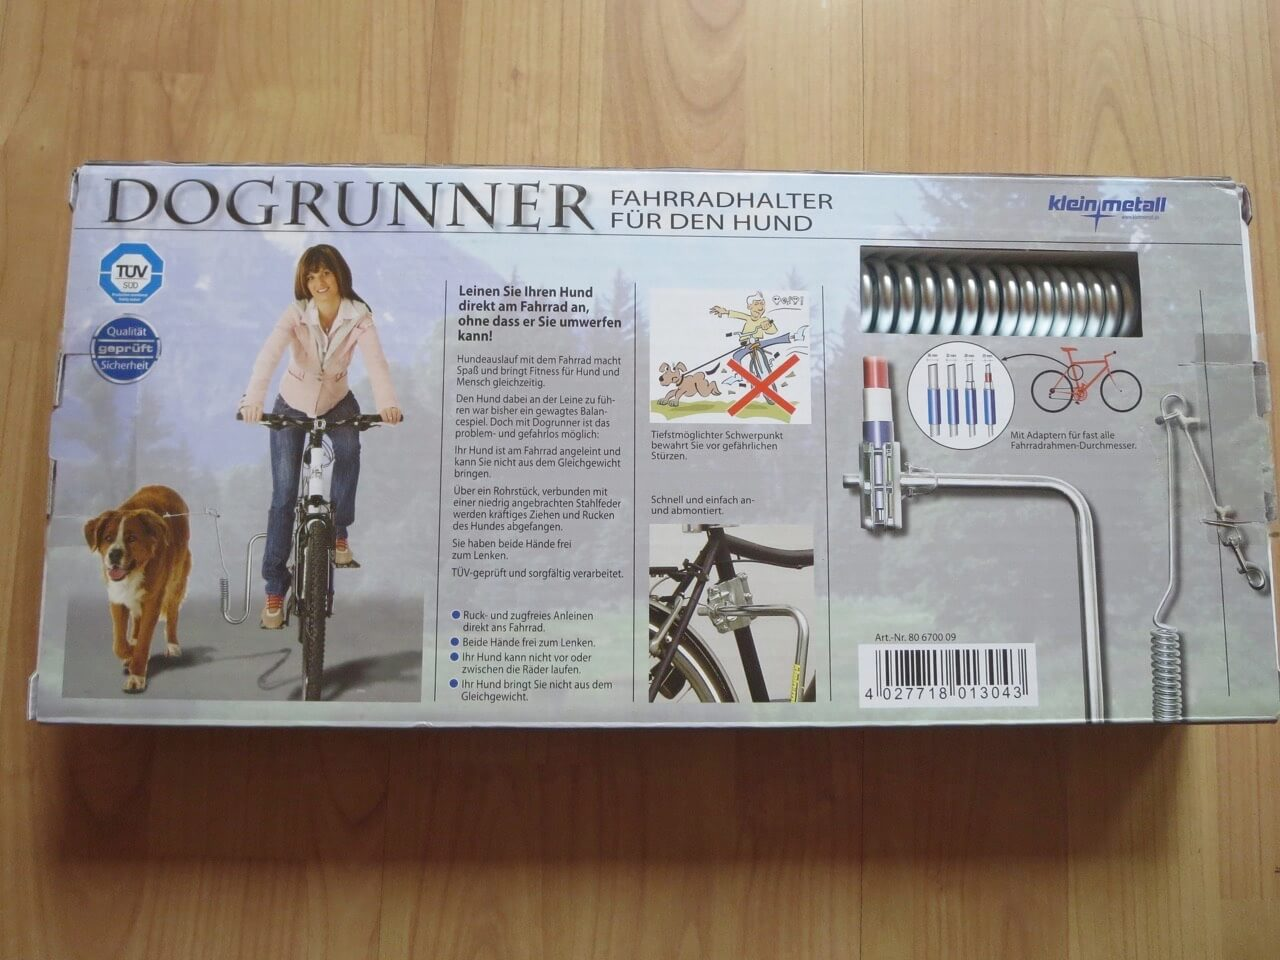 Verpackung Dogrunner